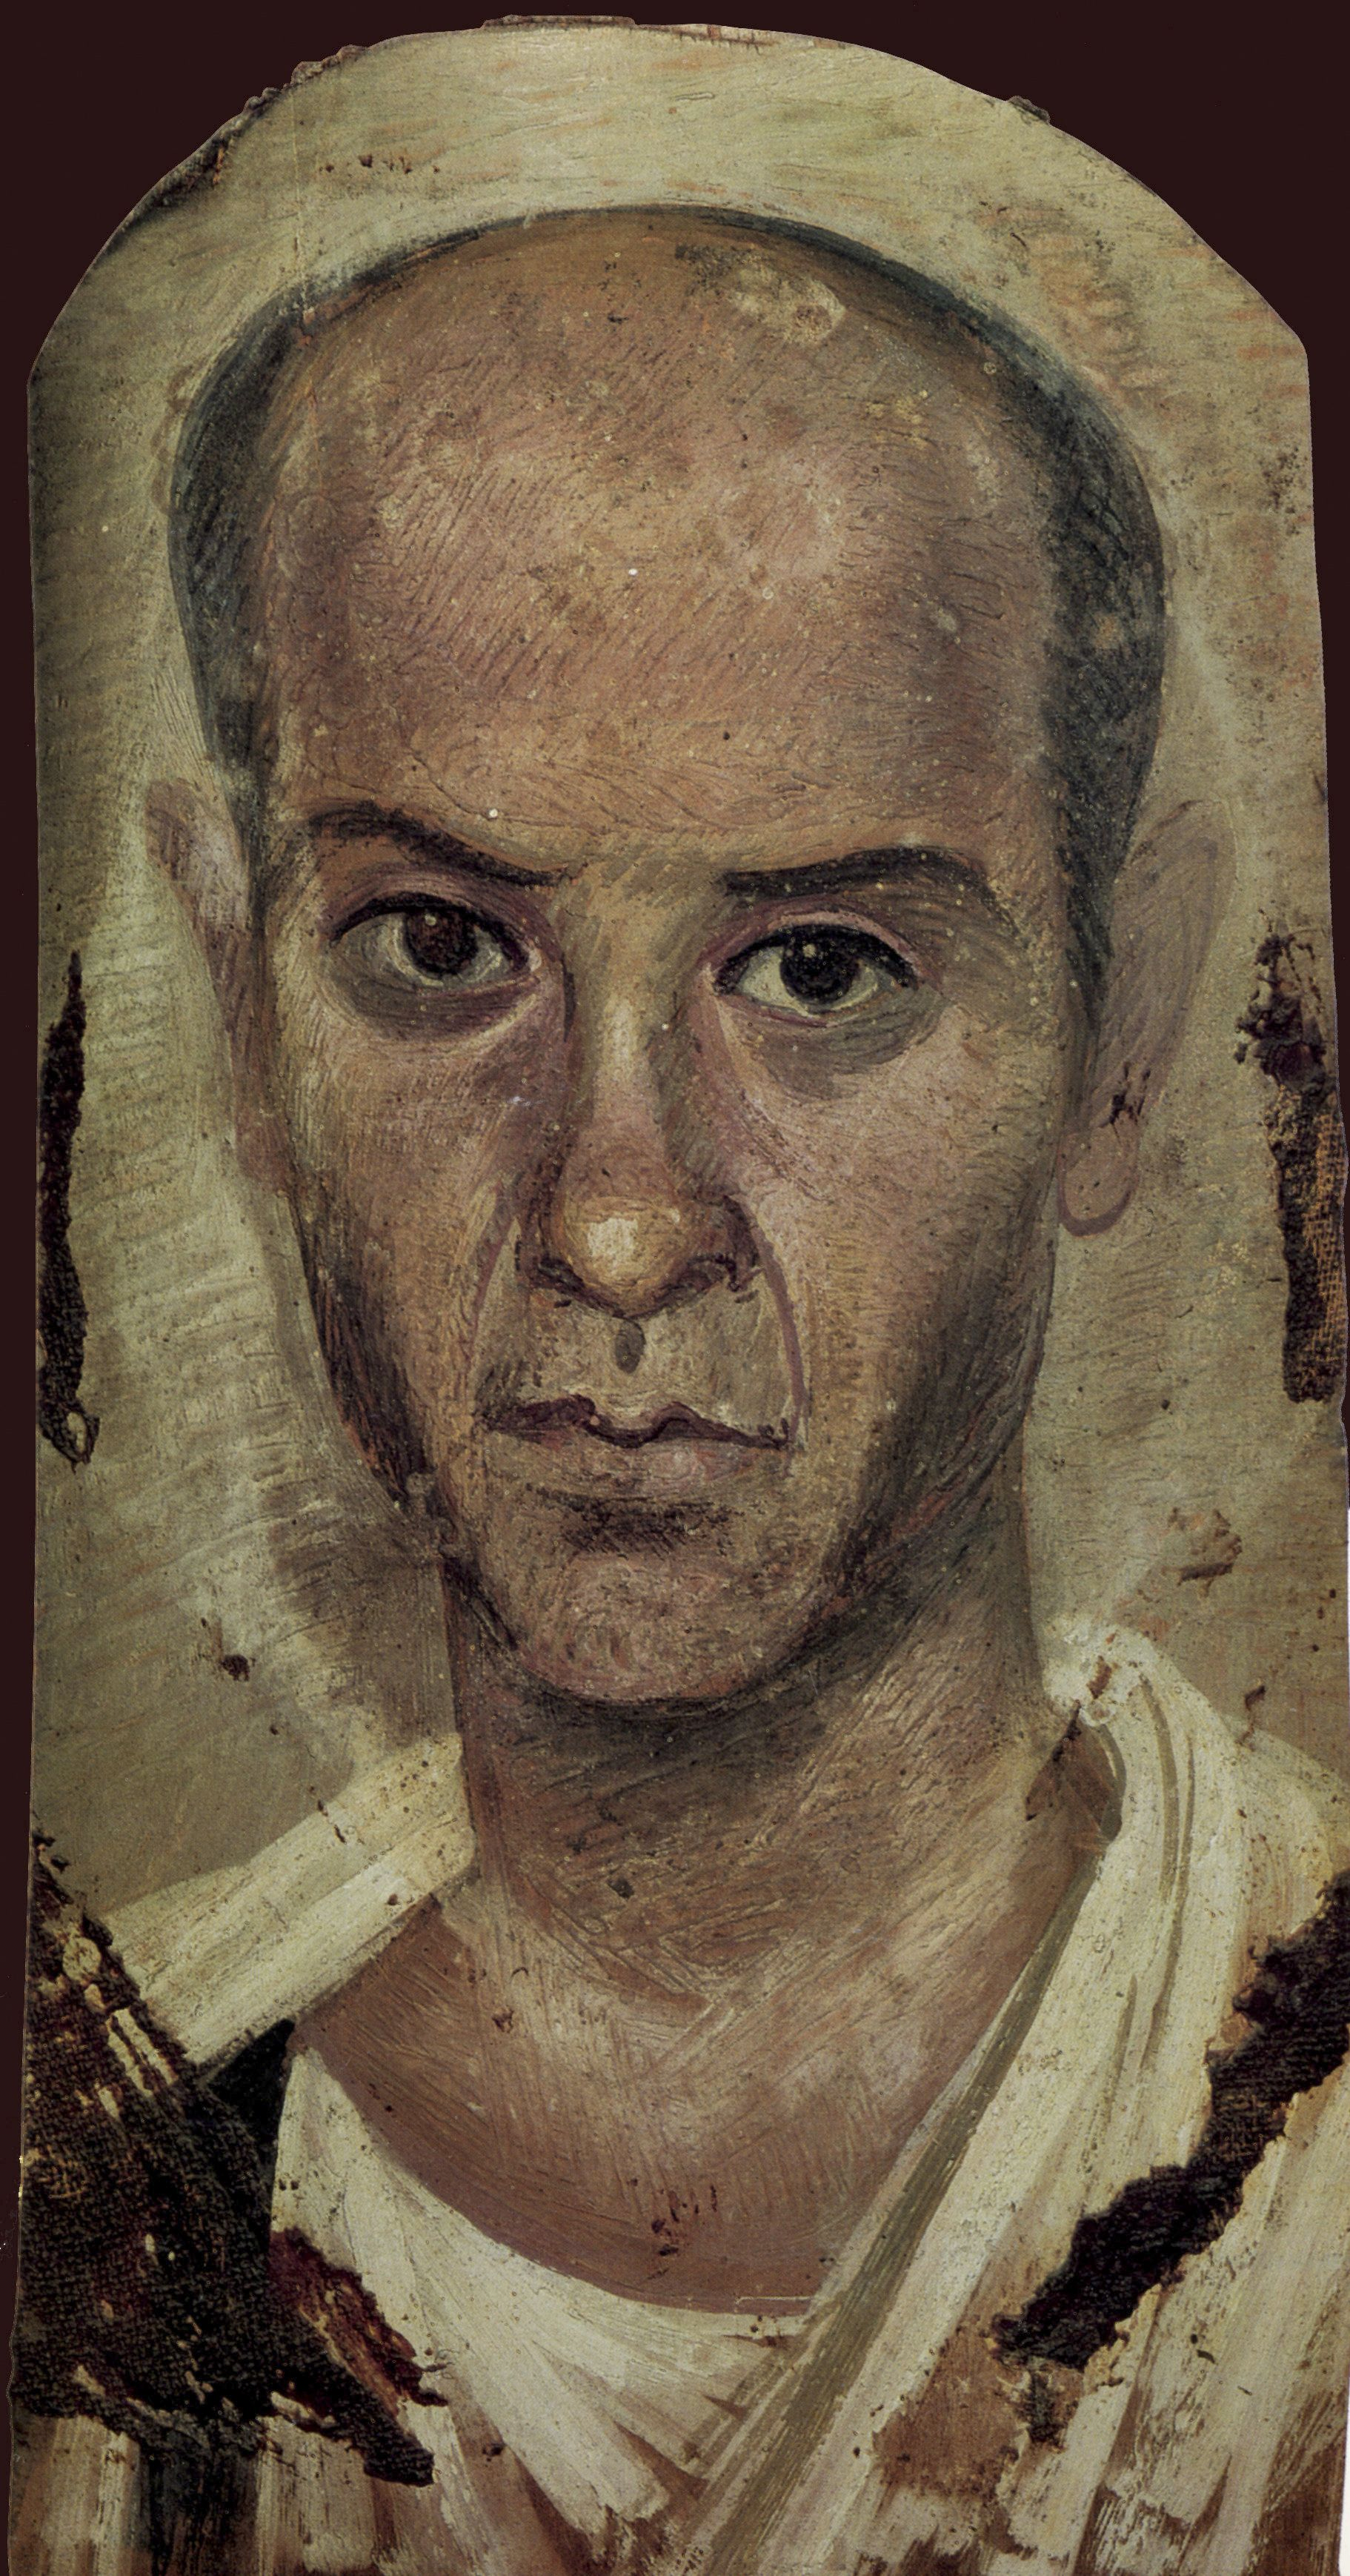 Pittura Romana Fayum The Fayum Portraits Greek And Roman Painting Style Encaustic